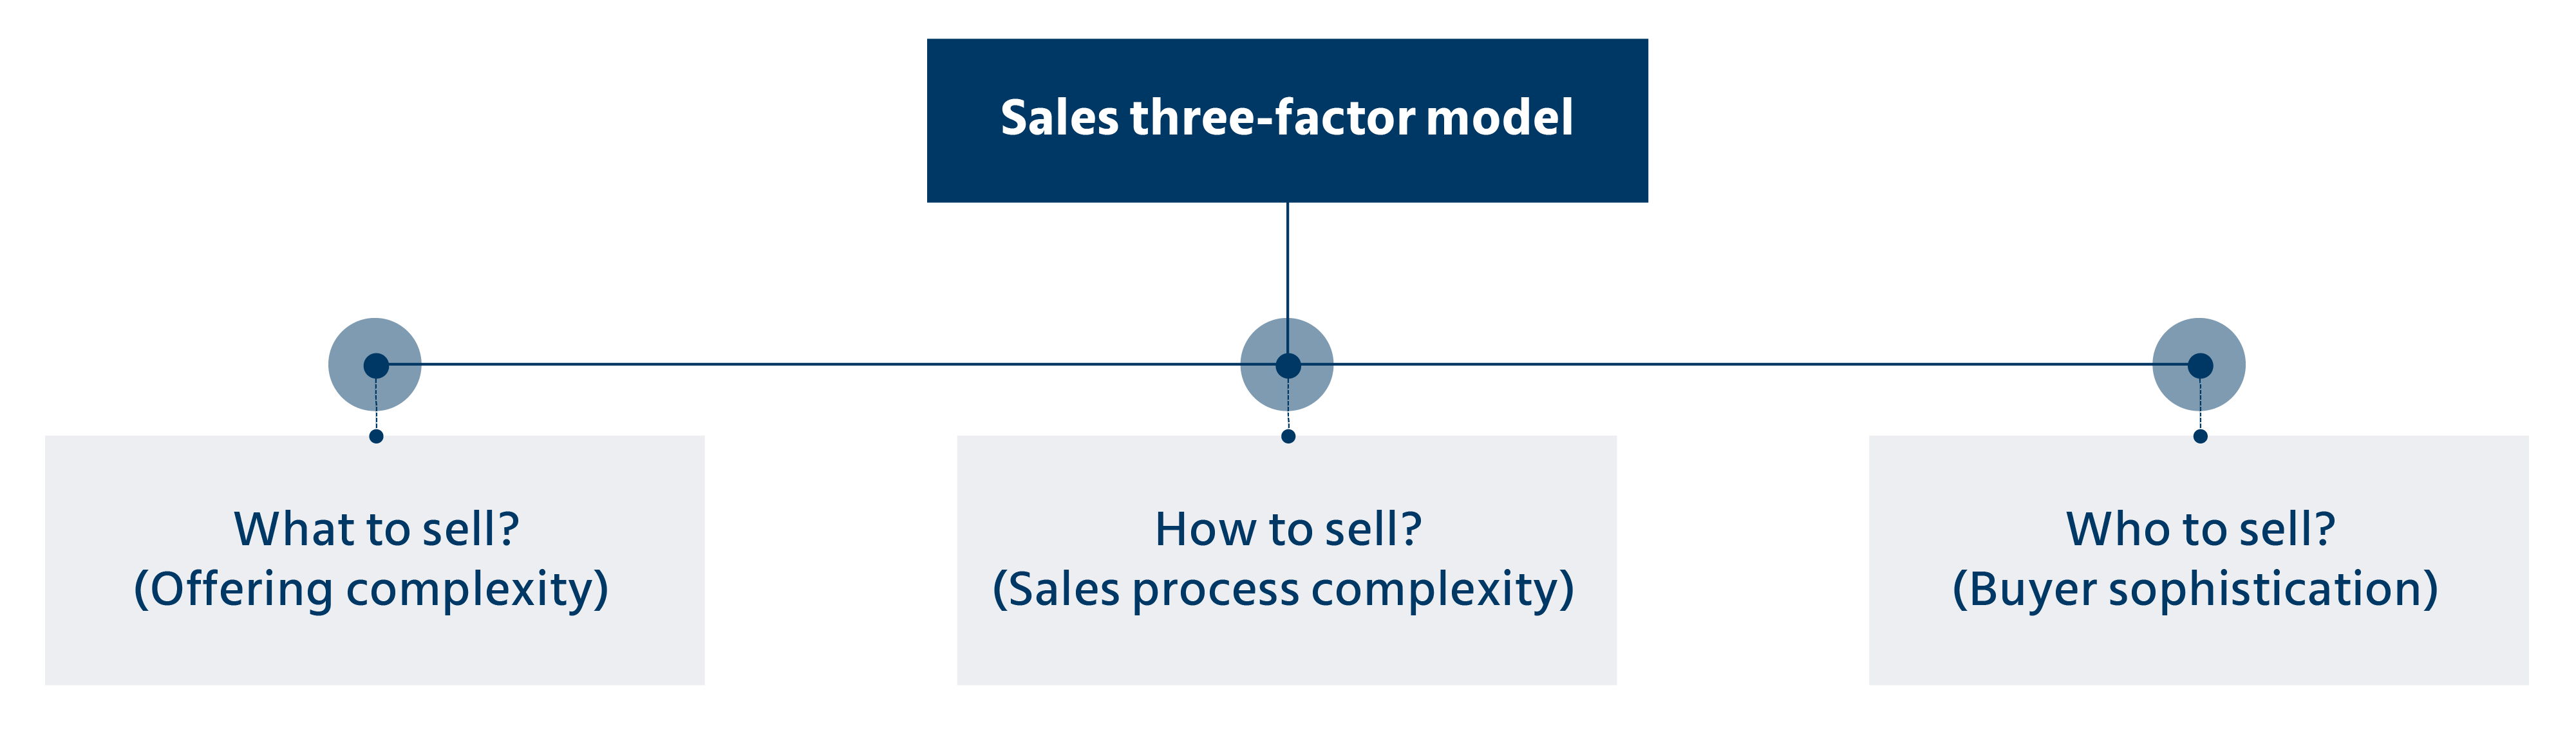 sales job roles across industries, based on the three-factor model